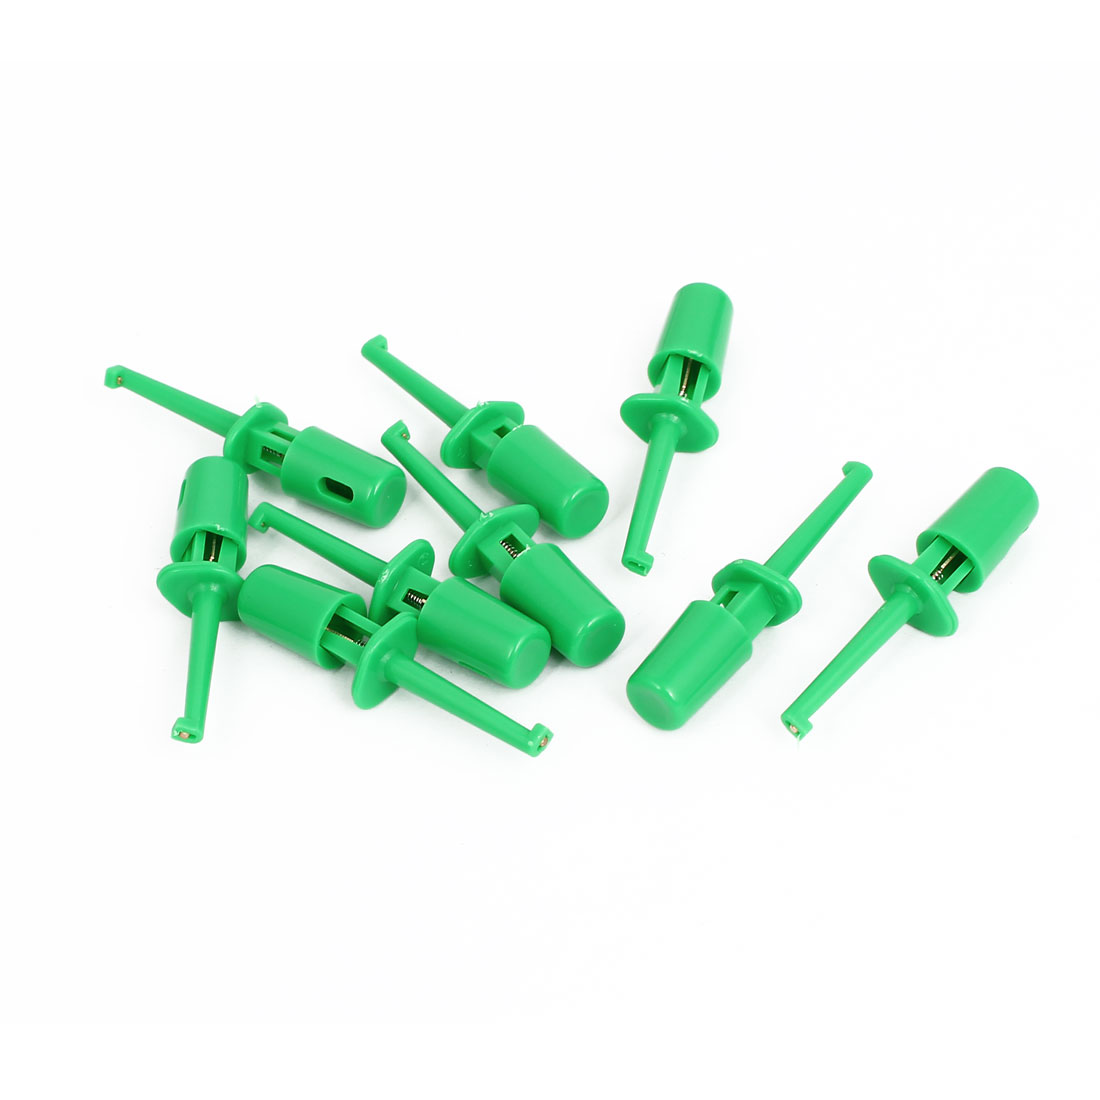 9pcs Plastic Covered Insulation Electrical Lead Wire Testing Hook Clip Green